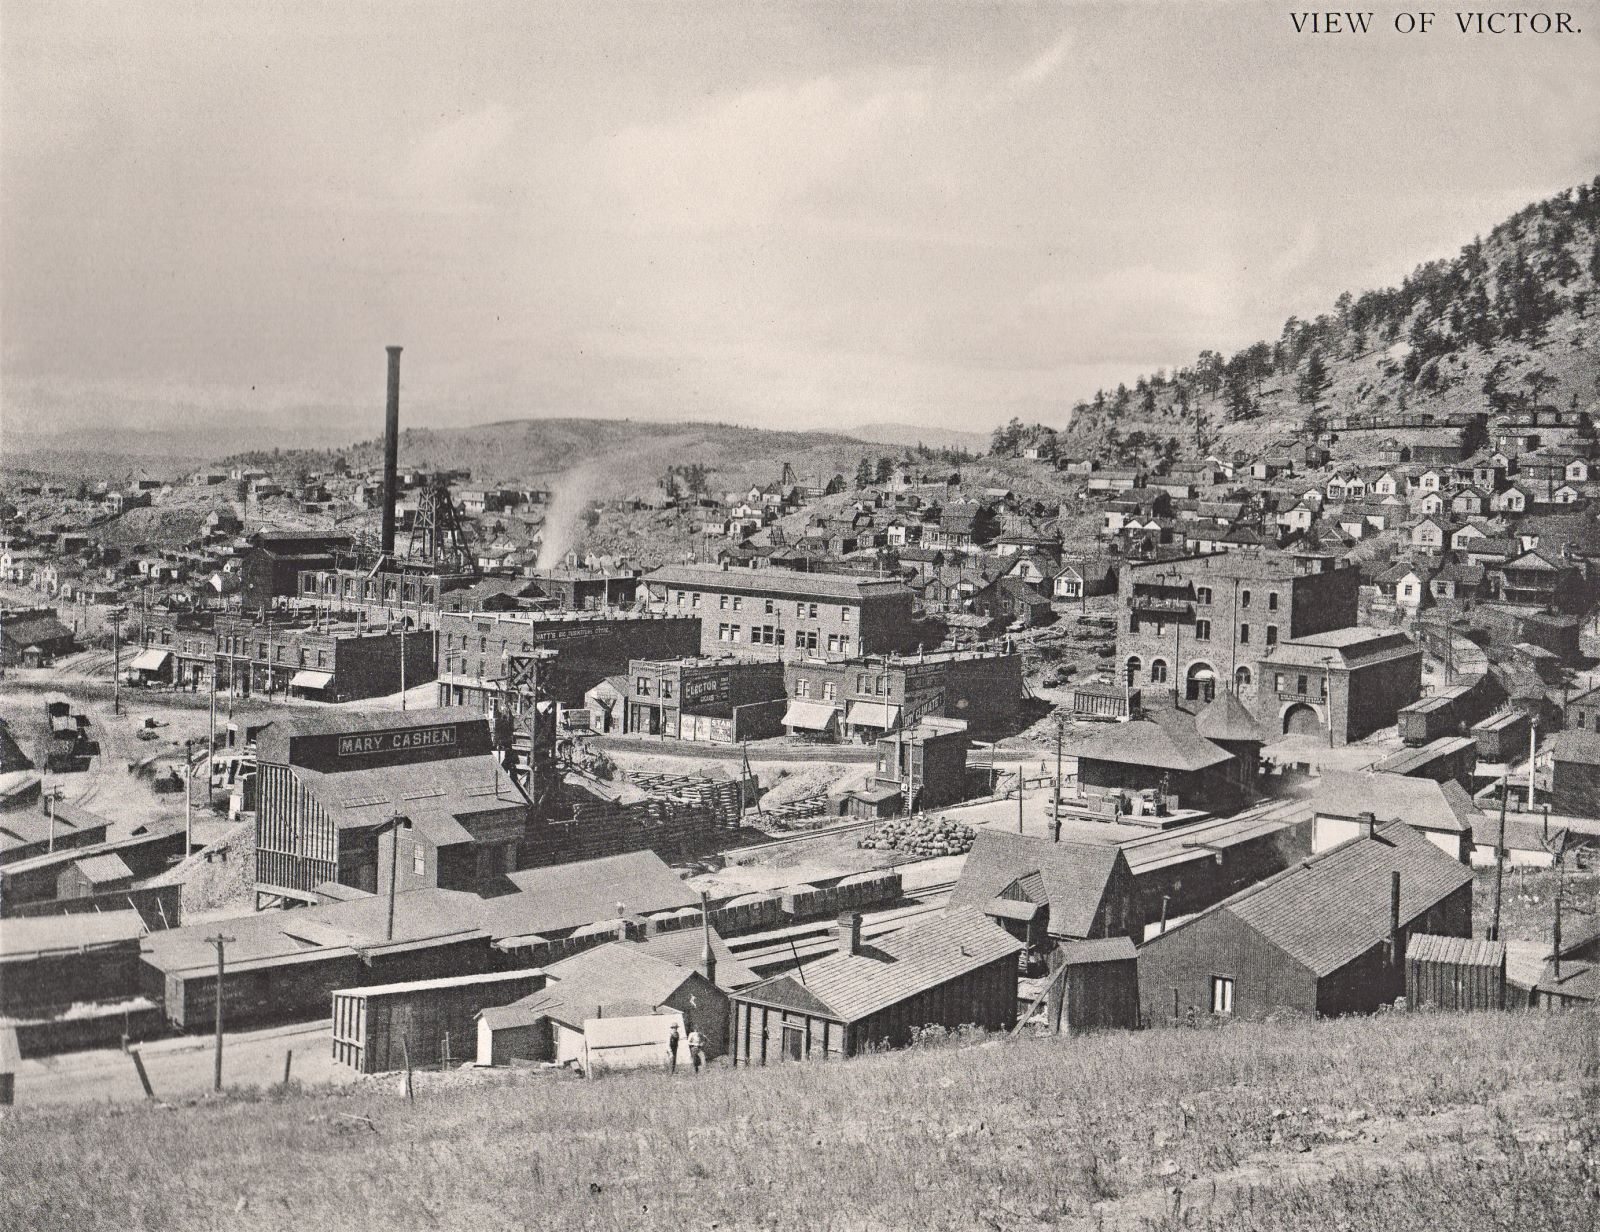 This interesting view from Battle Mountain towards the Gold Coin mine in Victor, as it is getting rebuilt after the 1899 fire that destroyed the old mine and lot of the town itself, helps give the impression of what was first rebuilt and what was postponed. The Ore-house was clearly important as that is already up in this view, same is the large head frame, while the shaft house only have the first level of walls put up. In the foreground is the distinctive Ore-house of the Mary Cashen seen, with its head frame just to the right of the orehouse.  Victor Public Sampler is the long structure in-front of the Mary Cashen, and the railroad in the foreground is the M.T with its depot towards the right-hand side of this view.